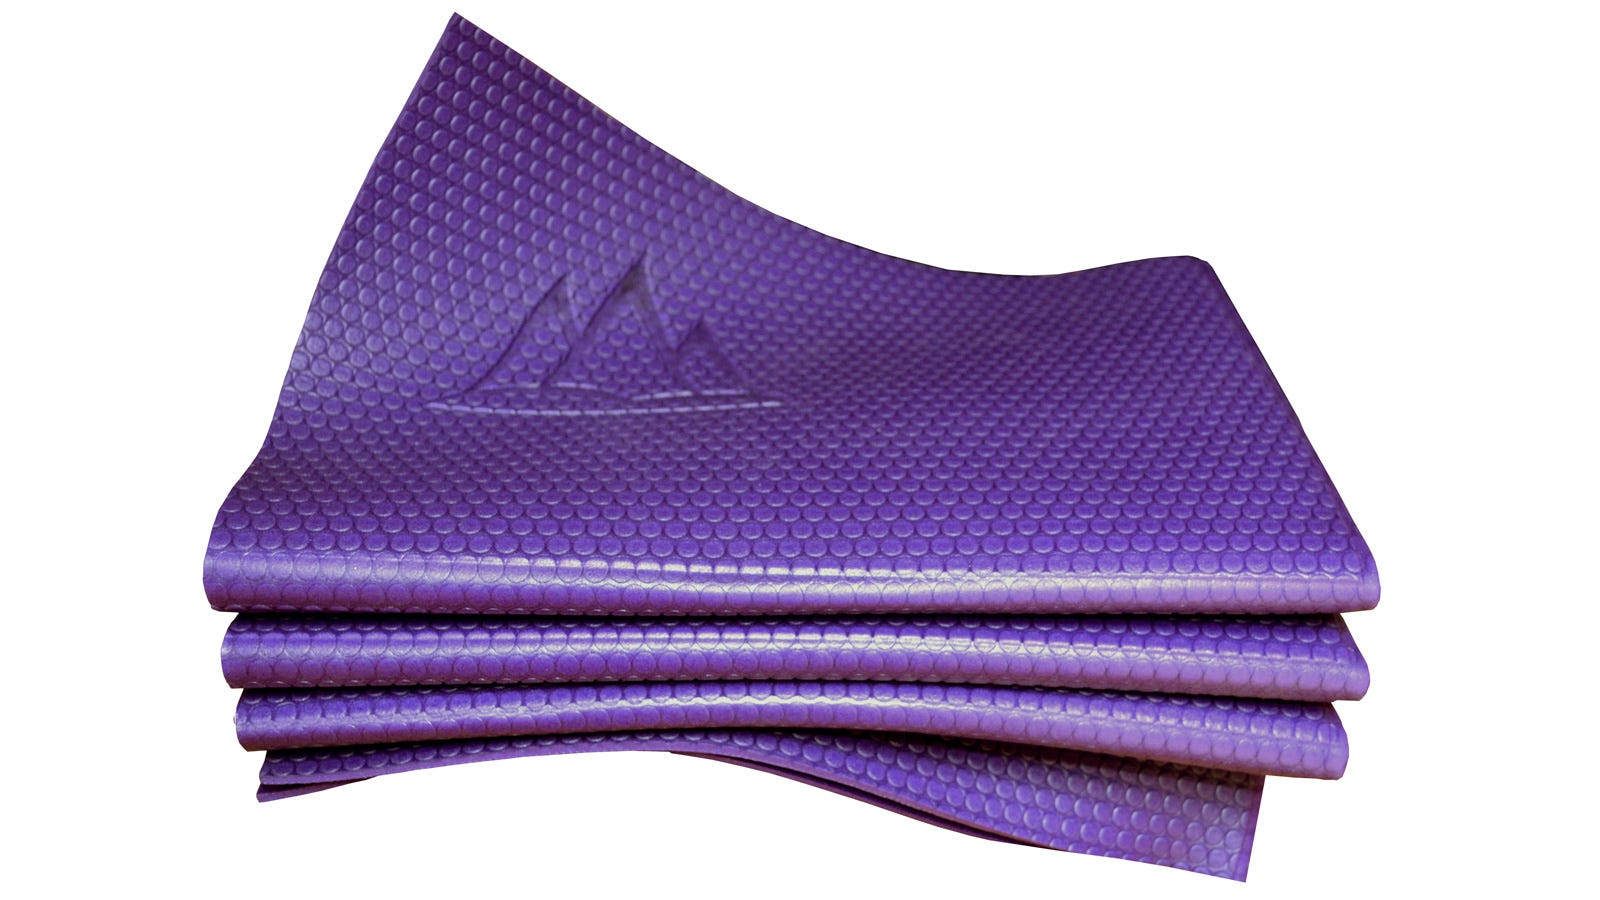 First Foldable Yoga Mat Goes Down To The Size Of A Book